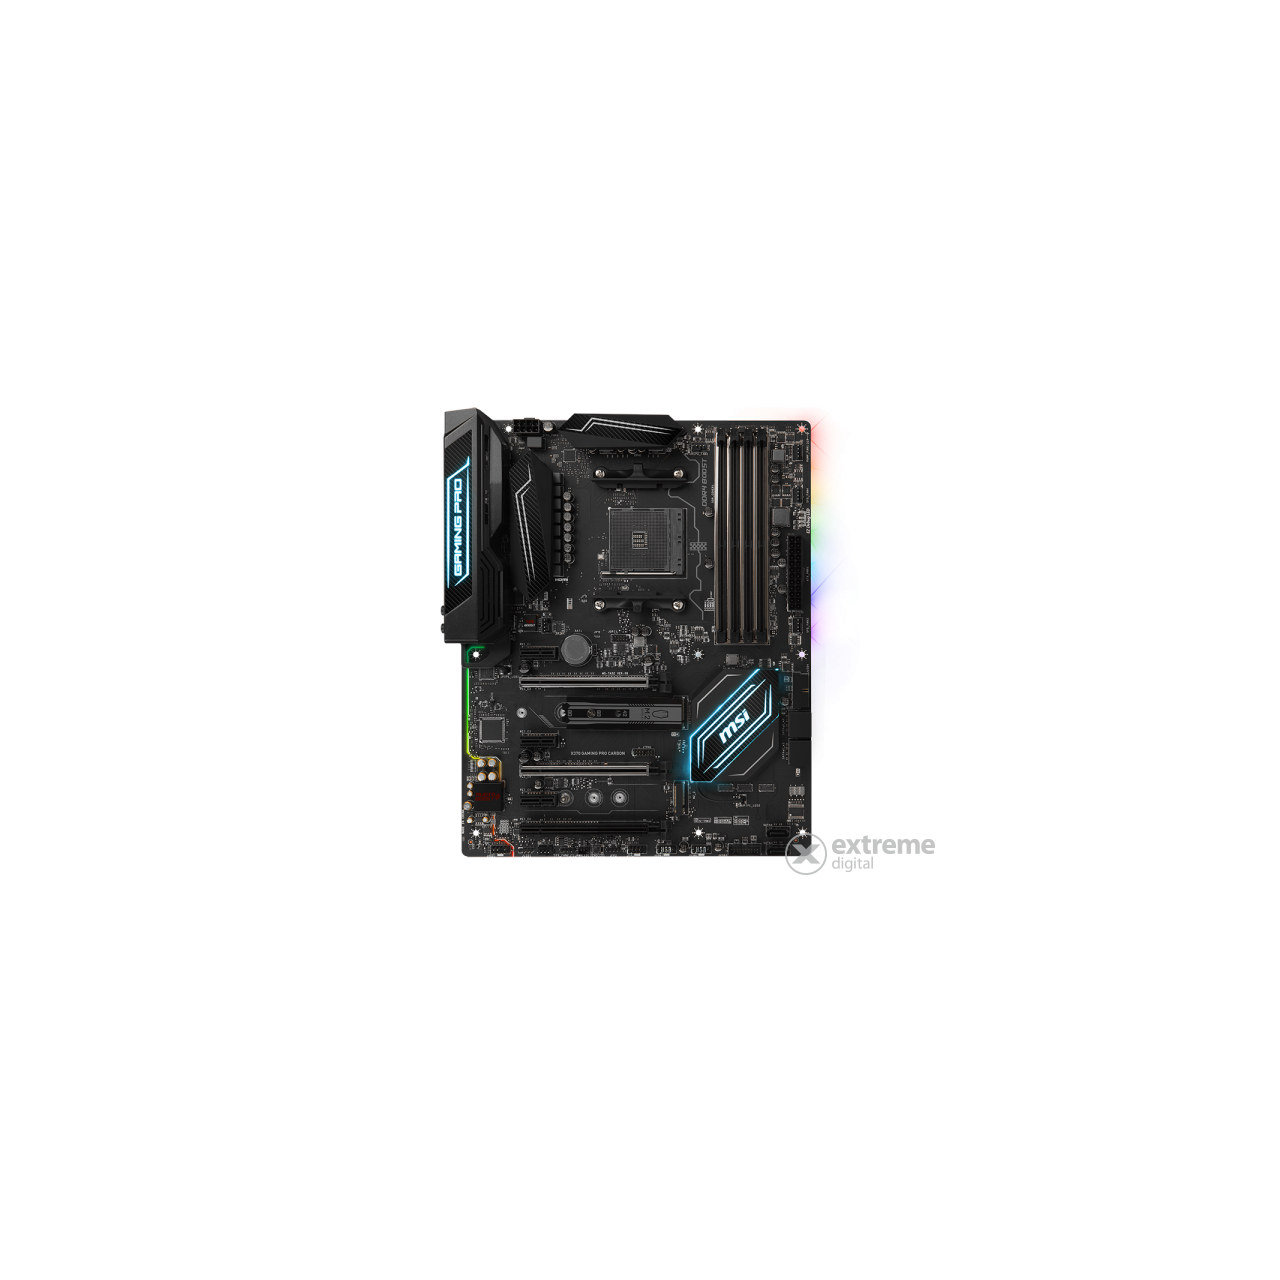 MSI AM4 X370 GAMING PRO CARBON AMD X370, ATX alaplap